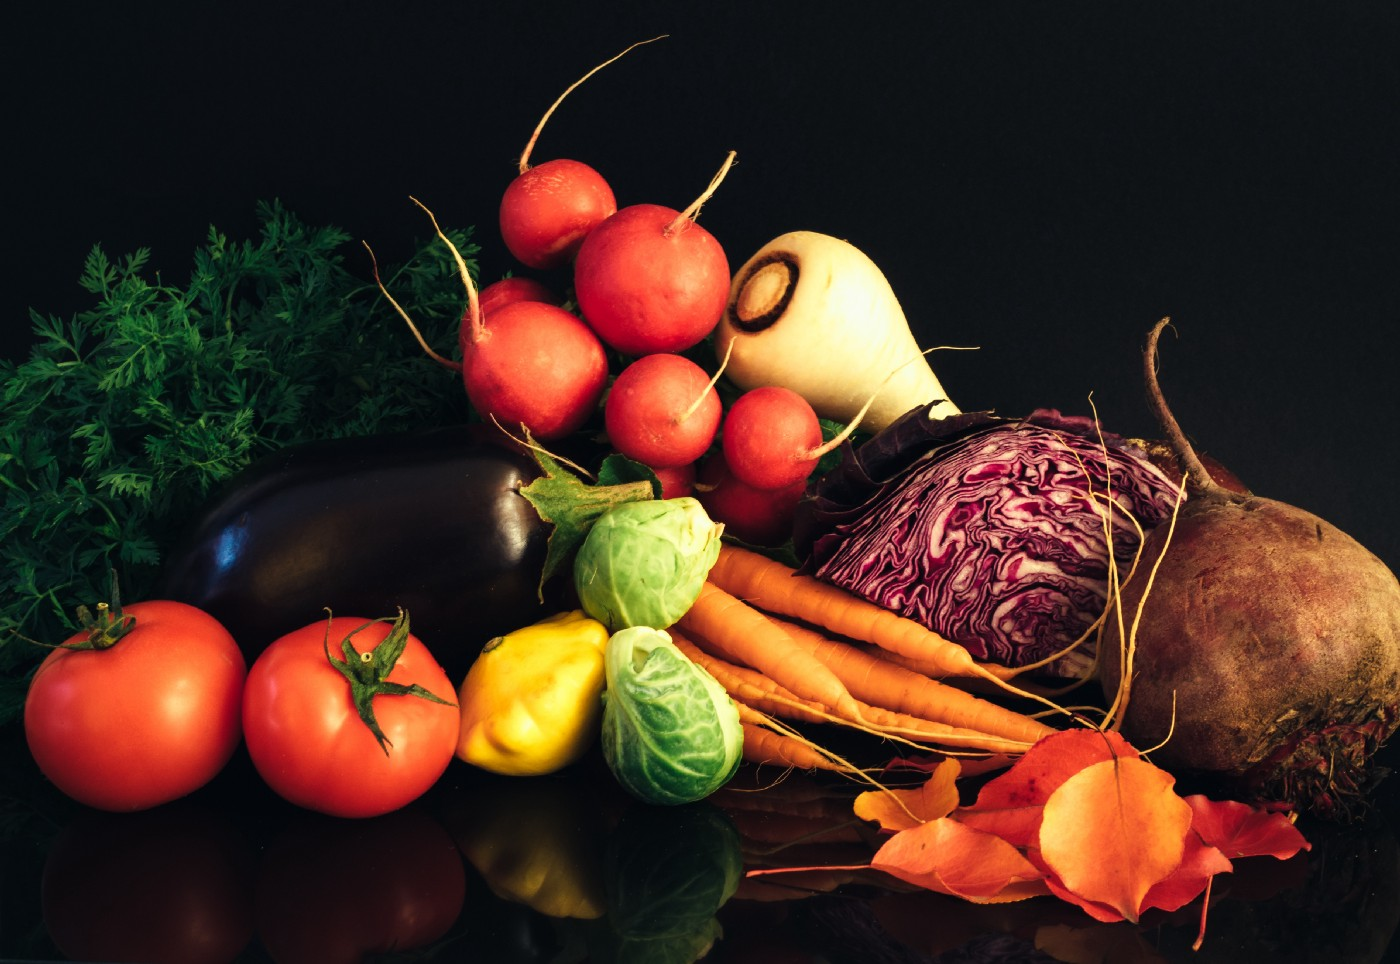 A pile of vegetables such as brinjal, tomato, carrots etc.